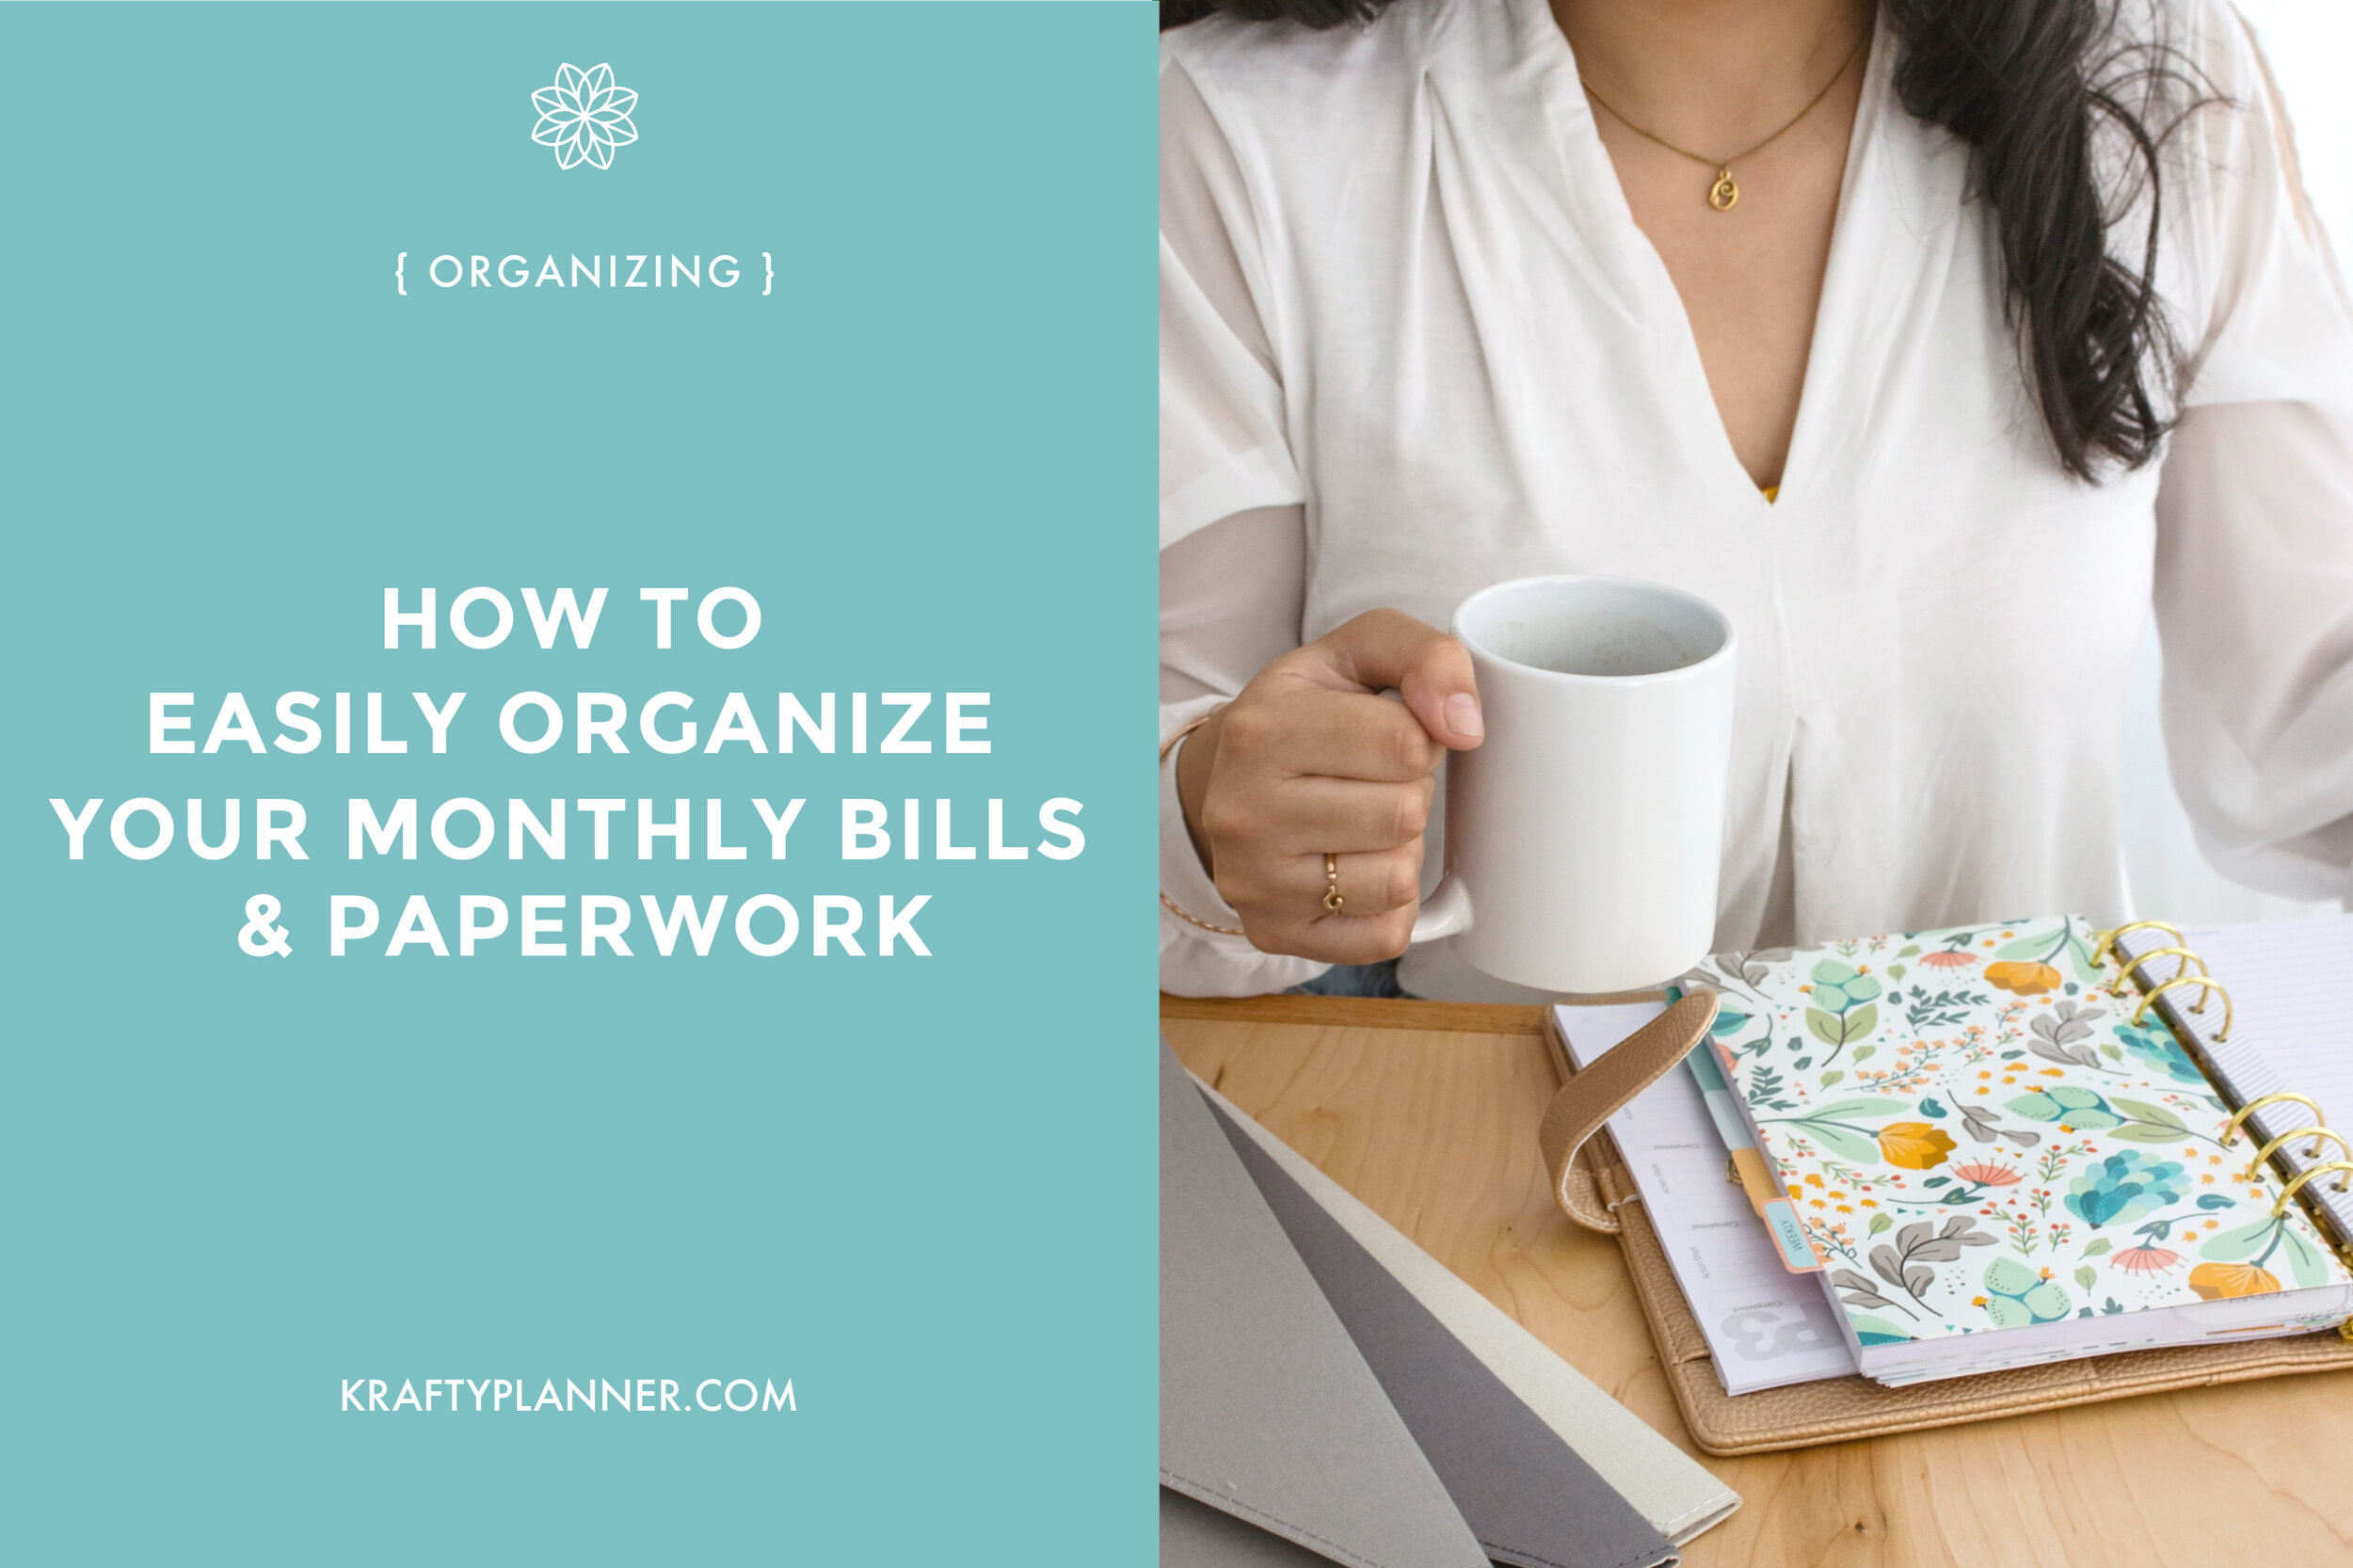 How to easily organize your monthly bills and paperwork Main Image.jpg